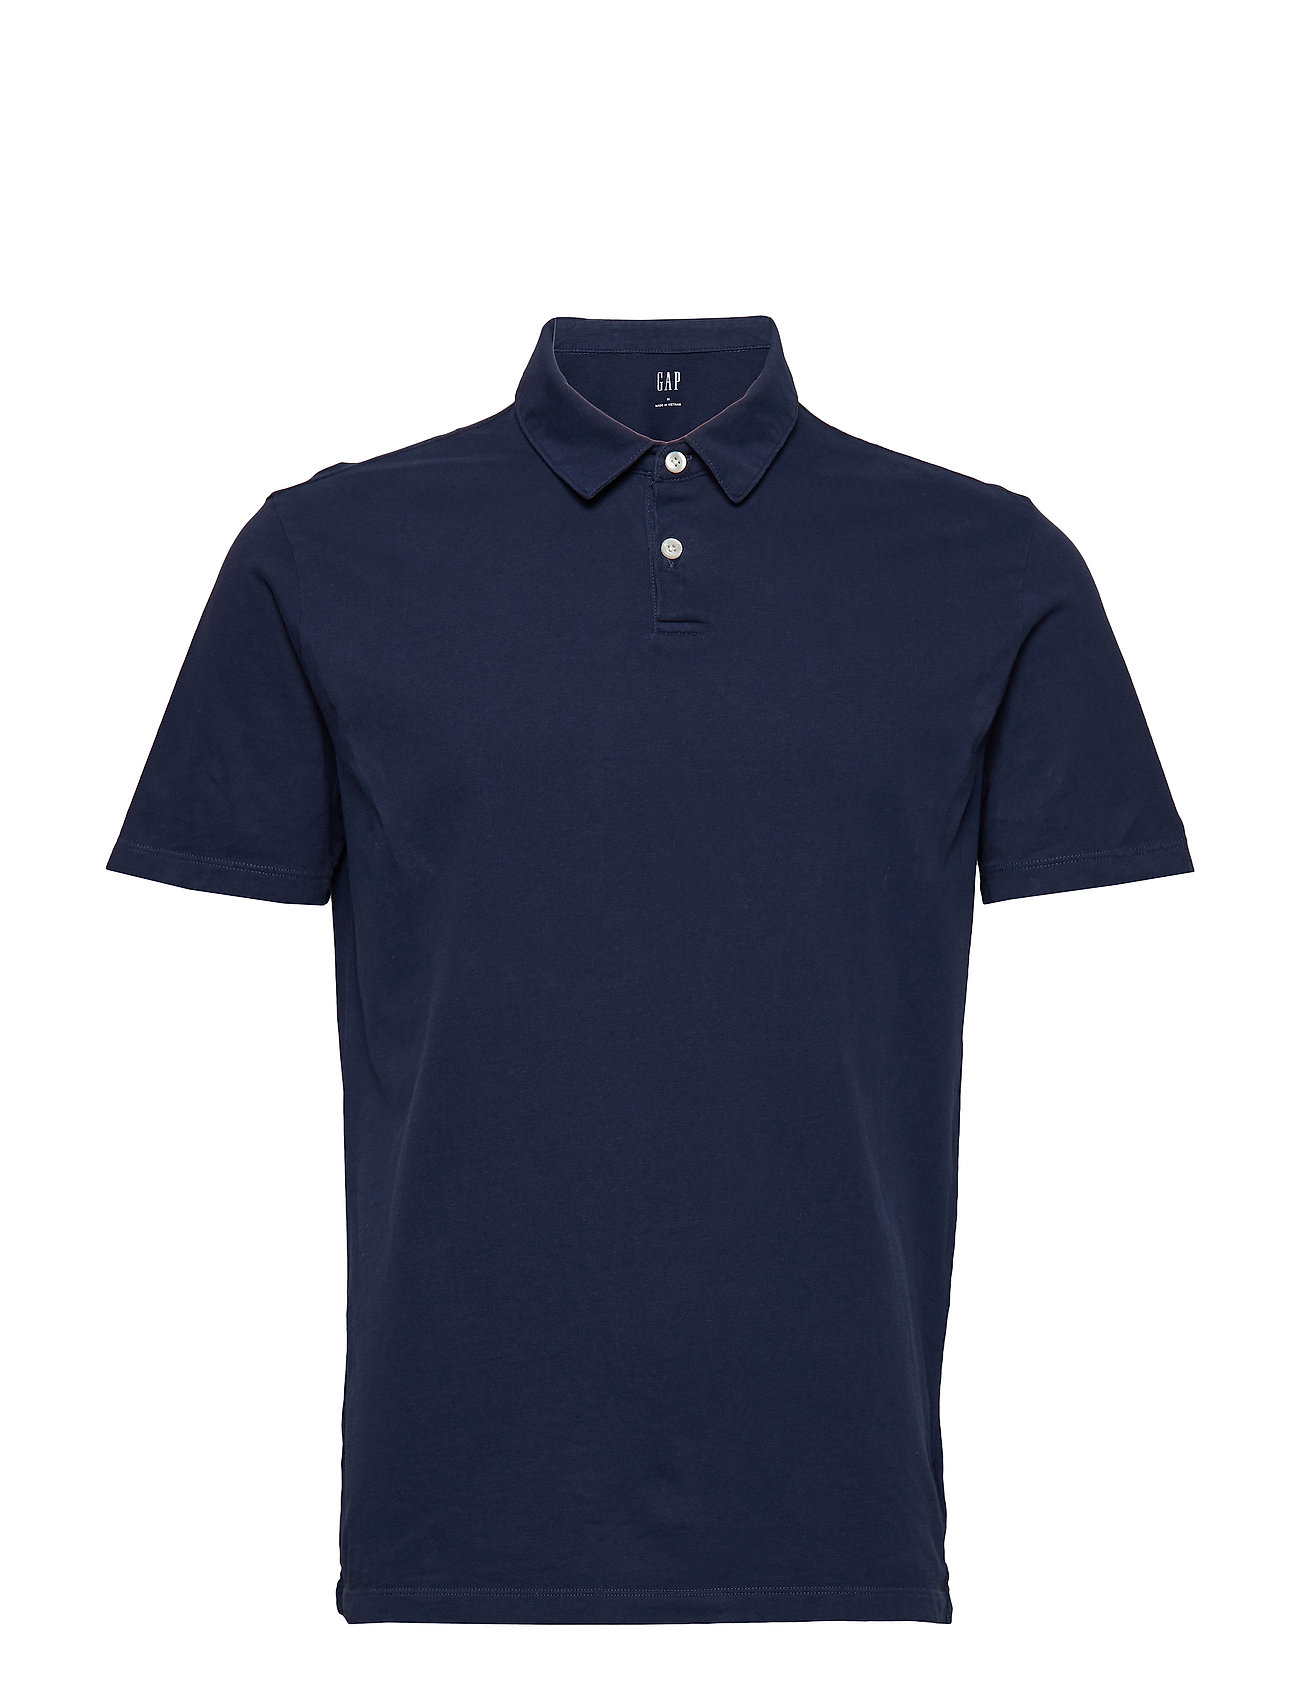 Jrsy Polotapestry Sueded V2Gap Sueded Jrsy Polotapestry V2Gap Navy Sueded Navy eDYHIWE92